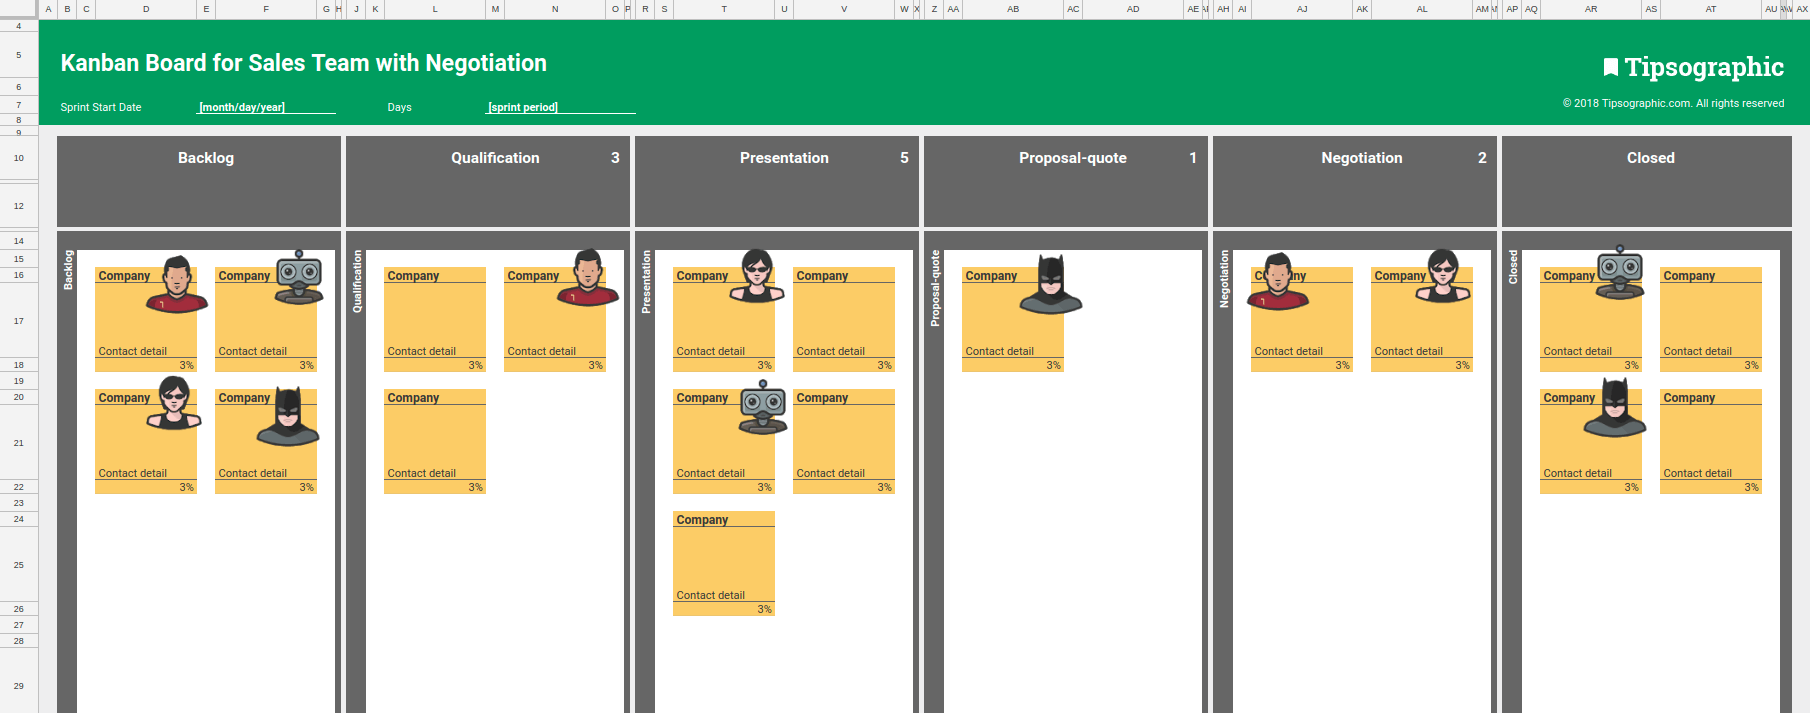 4 Kanban Boards For Sales Team Excel Free Download Excel And Google Sheets Tipsographic Kanban Agile Project Management Templates Project Management Tools